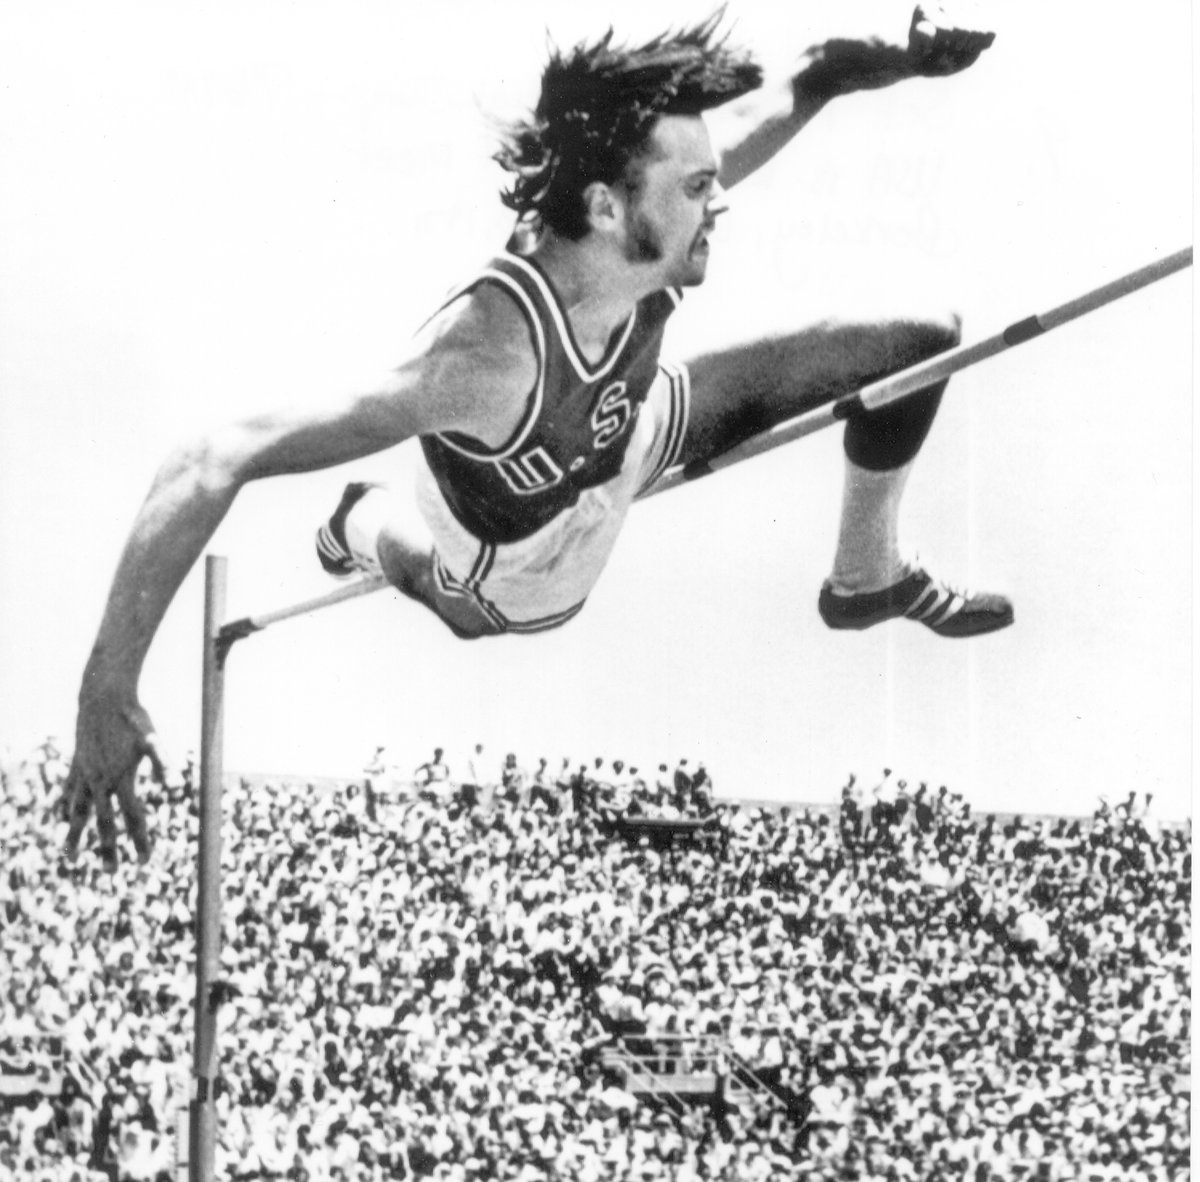 Missed 2 big school record holders over the holiday weekend. Pat Matzdorf set a world record in the men's high jump at 7-6 /1/4 back in 1971 and Cathy Branta set a school record of 15:07.56 in the 5000 meters in 1985. 💥💥 https://t.co/HyXhqGIaeA